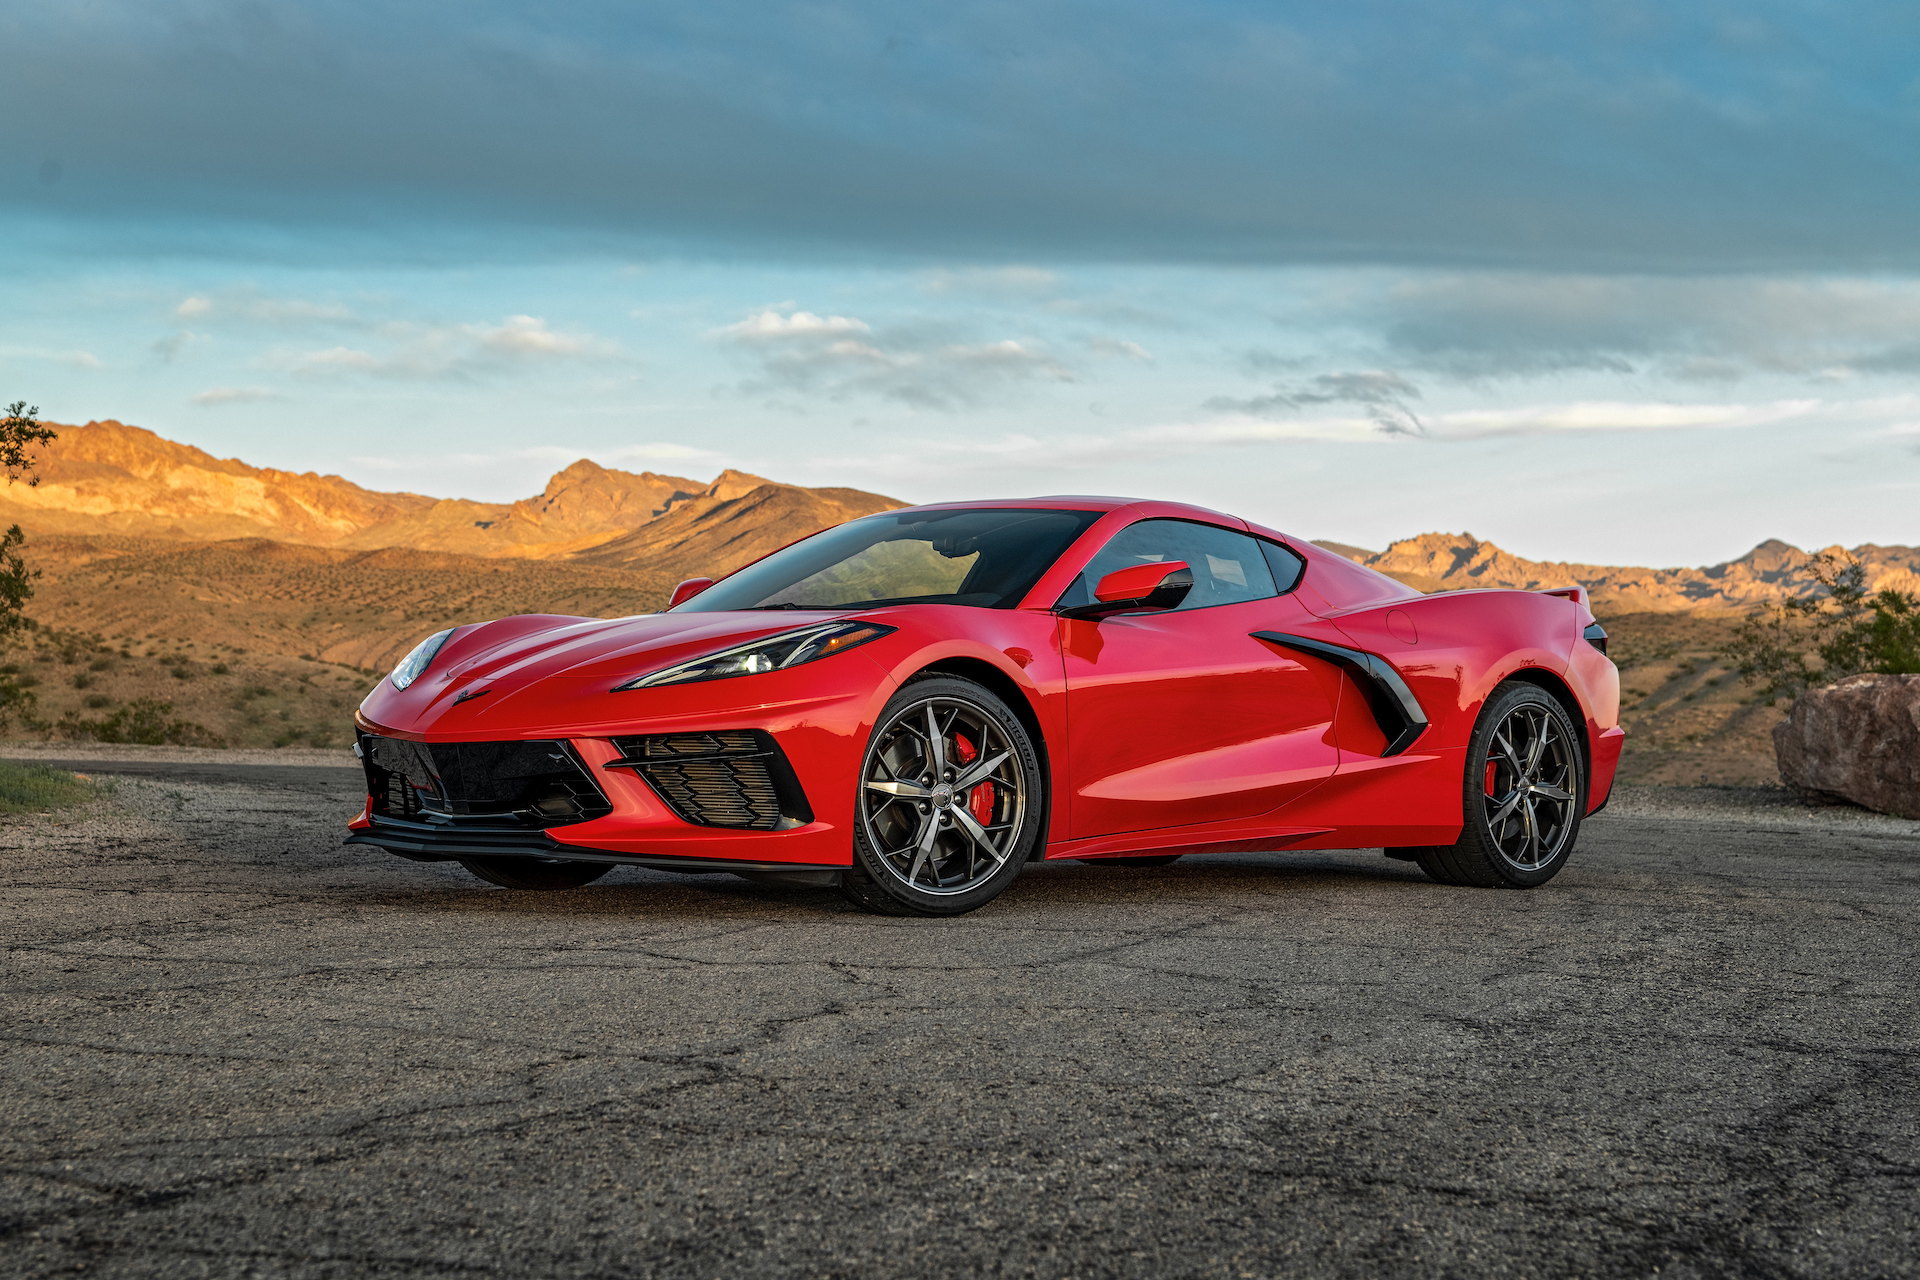 7 things to know about 2020 Chevy Corvette development and performance